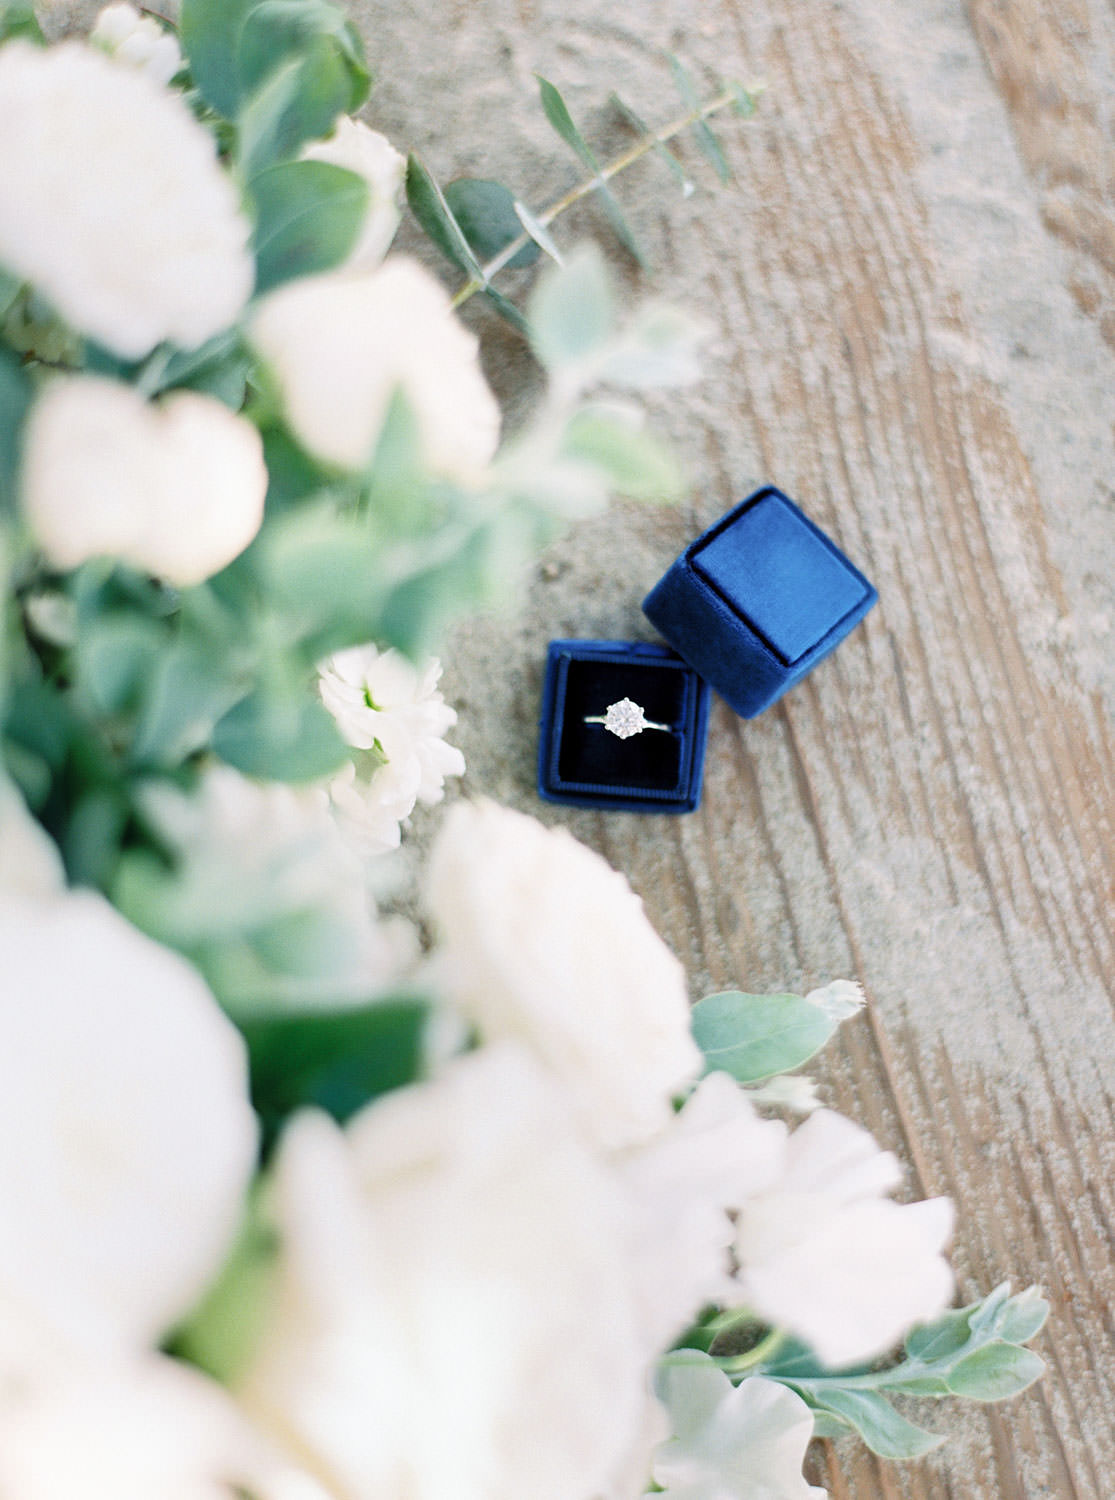 Green and white engagement bouquet, Contax 645 Fuji 400h San Diego wedding film photographer, La Jolla Windansea Engagement Photo of ring in blue Mrs Box, Cavin Elizabeth Photography